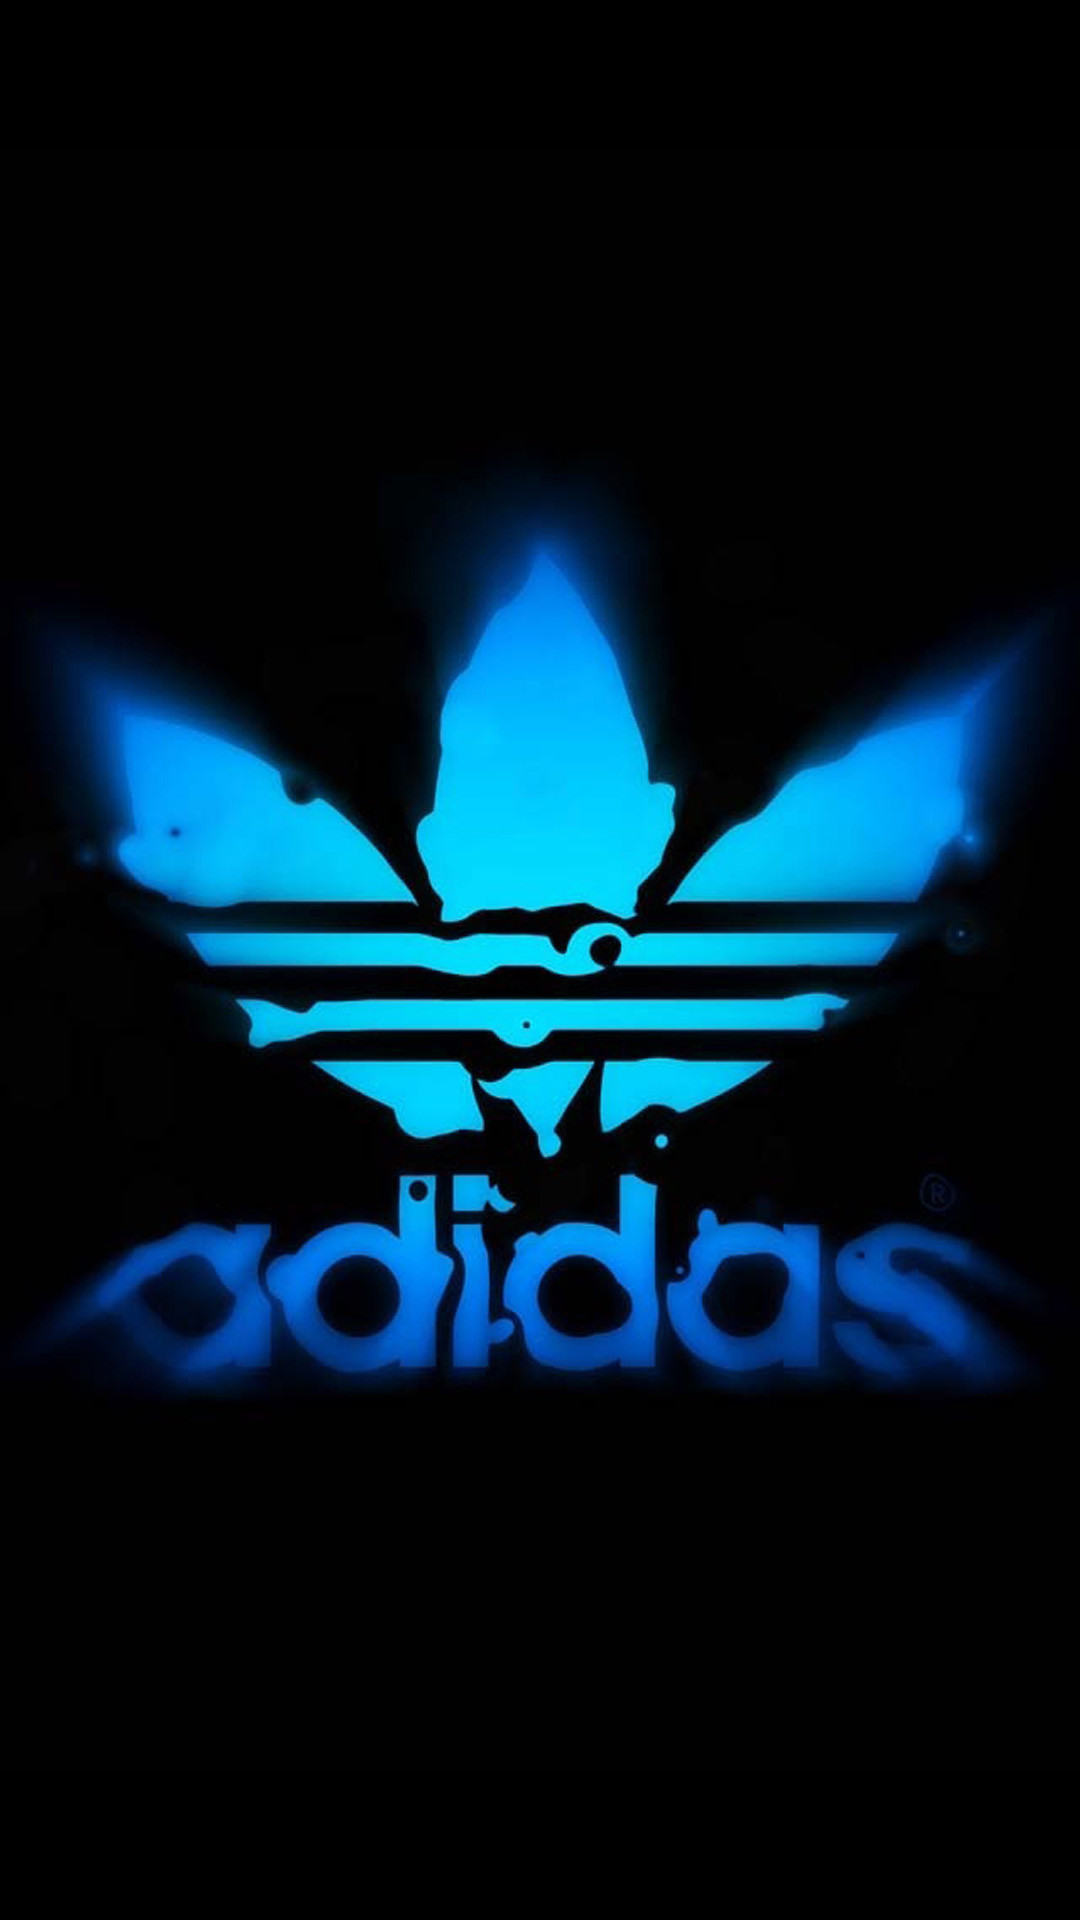 Adidas Shoes Original Logo